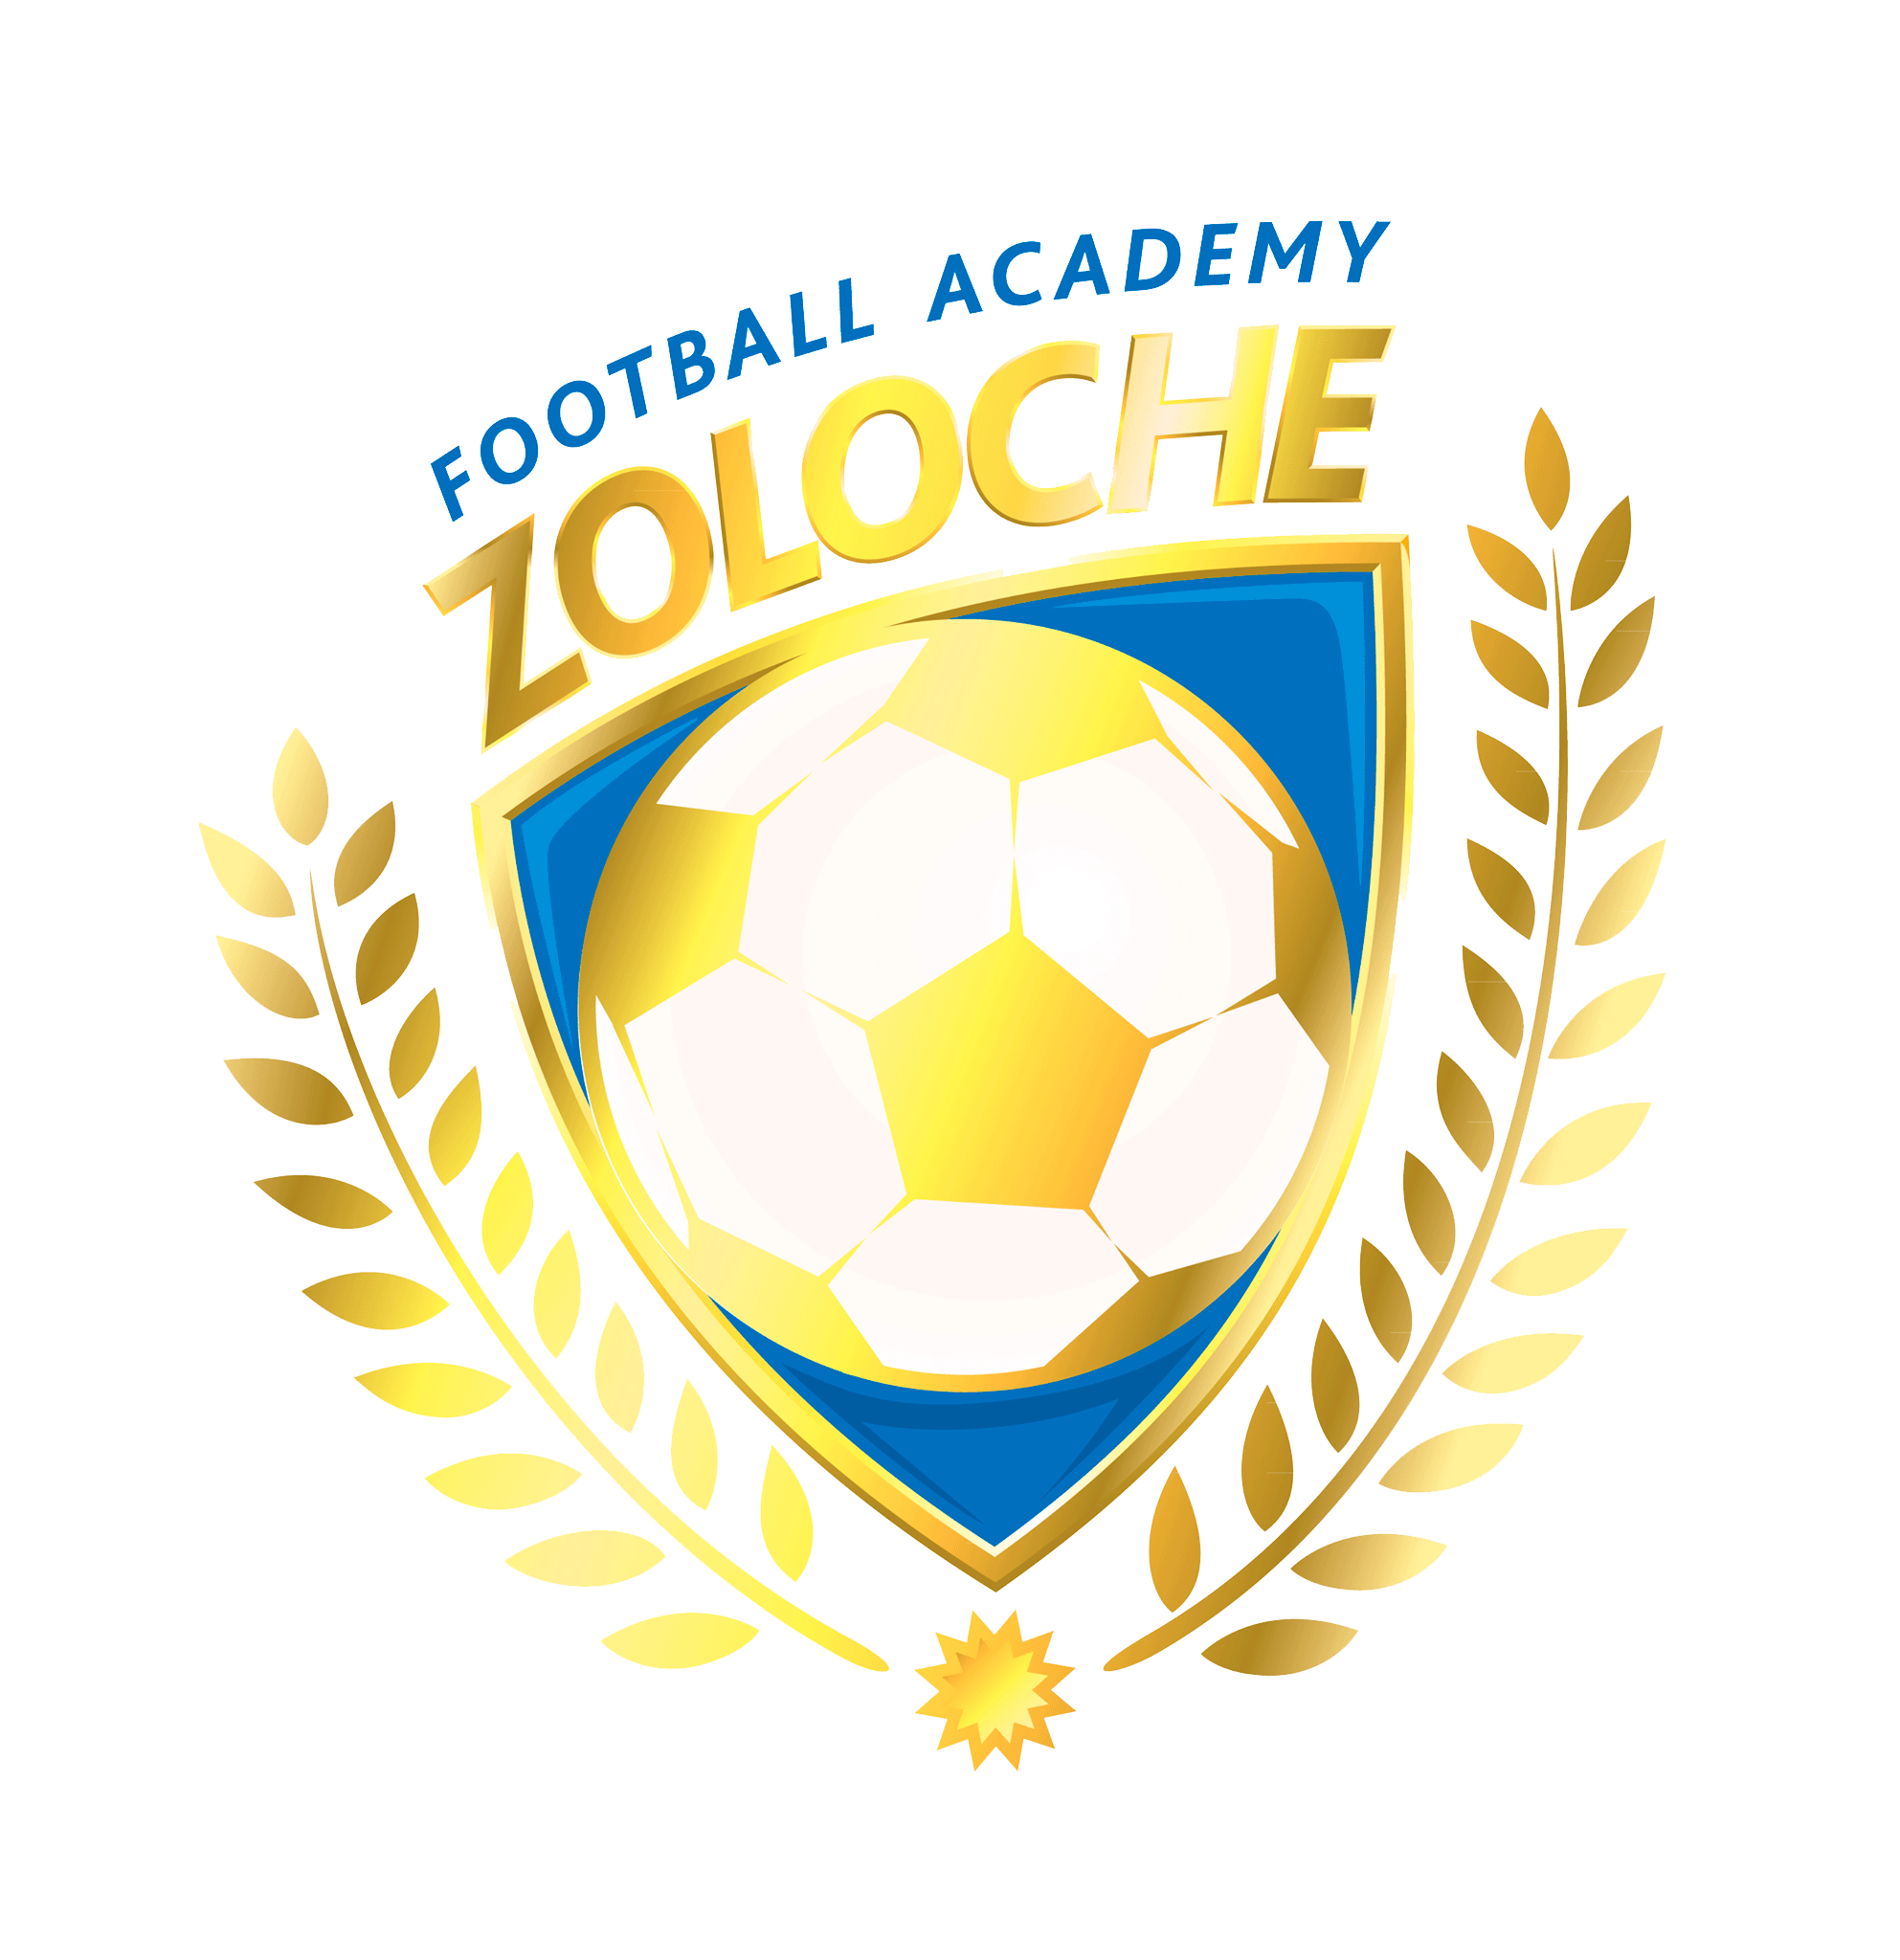 Zoloche Football Academy